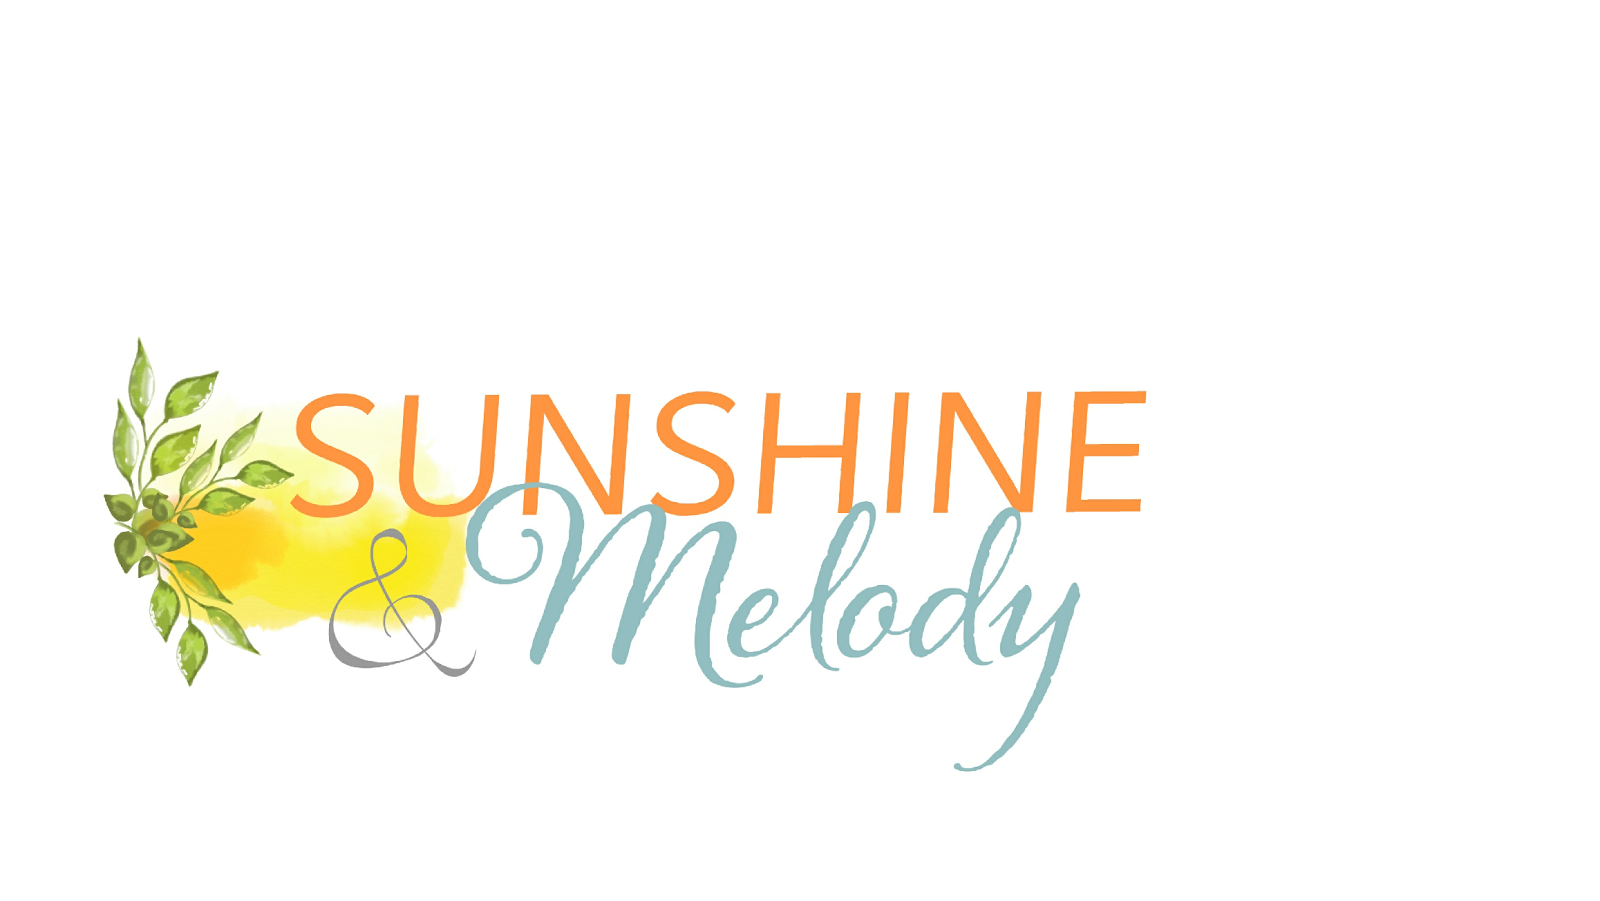 Sunshine and Melody